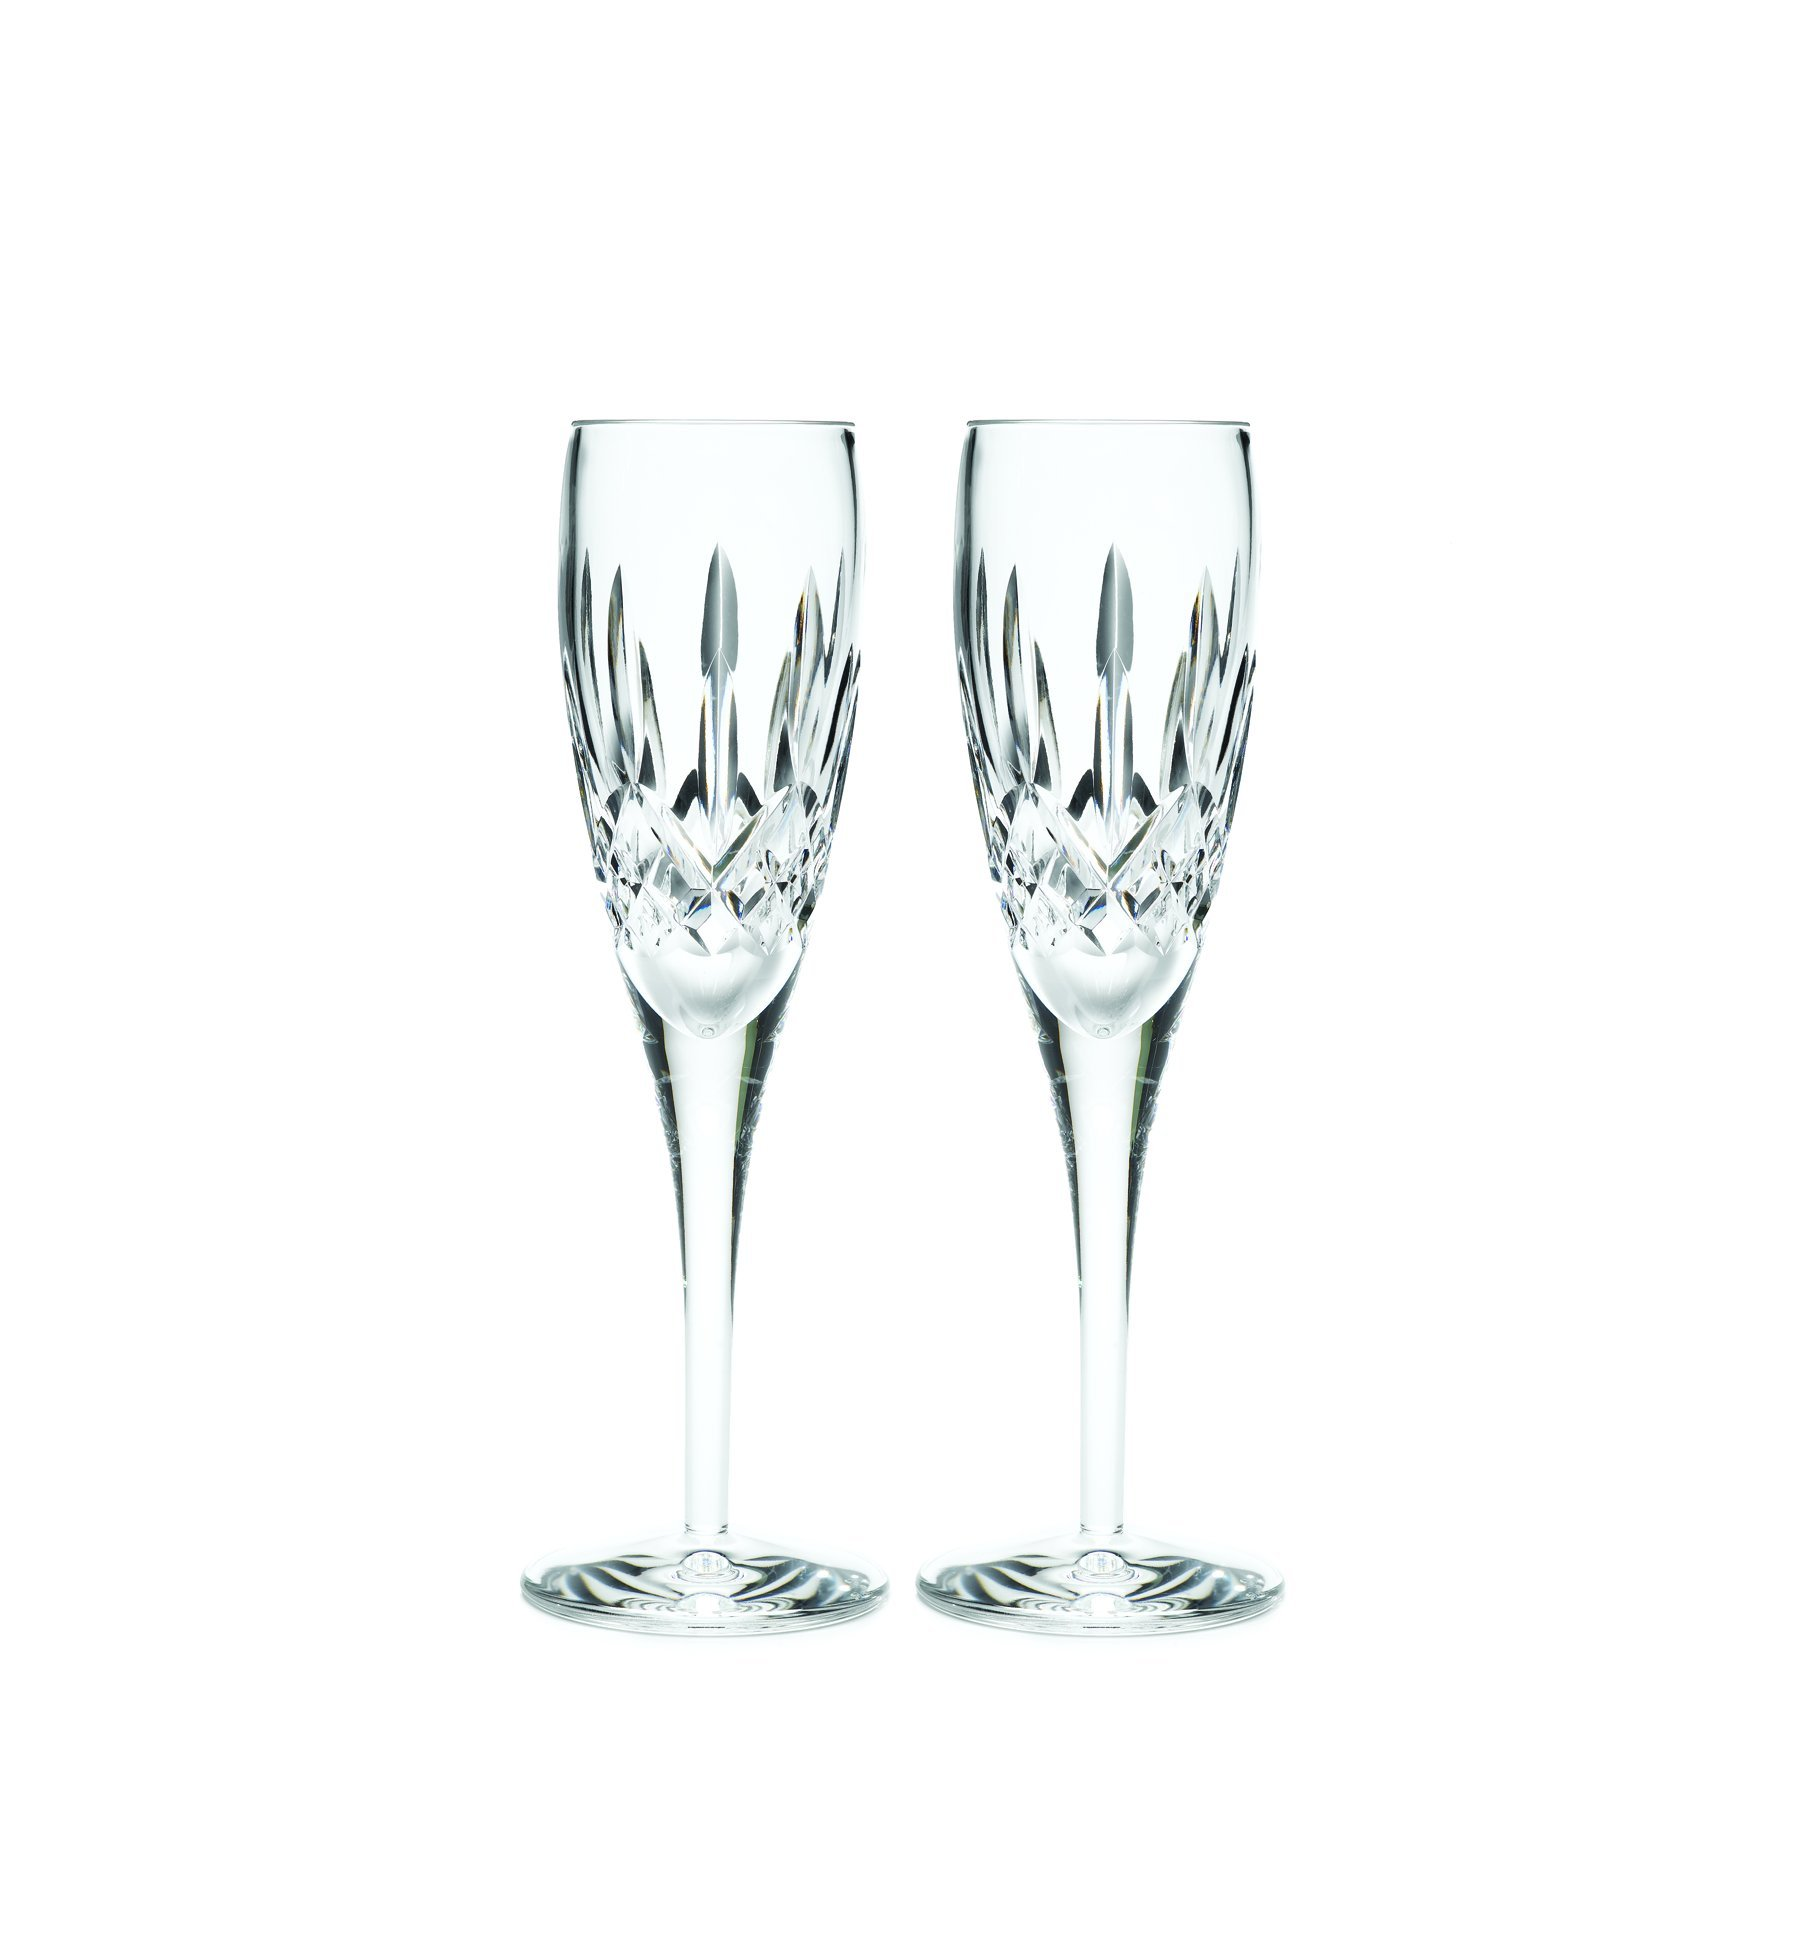 Waterford Lismore Nouveau Champagne Flute Pair, 7-Ounce